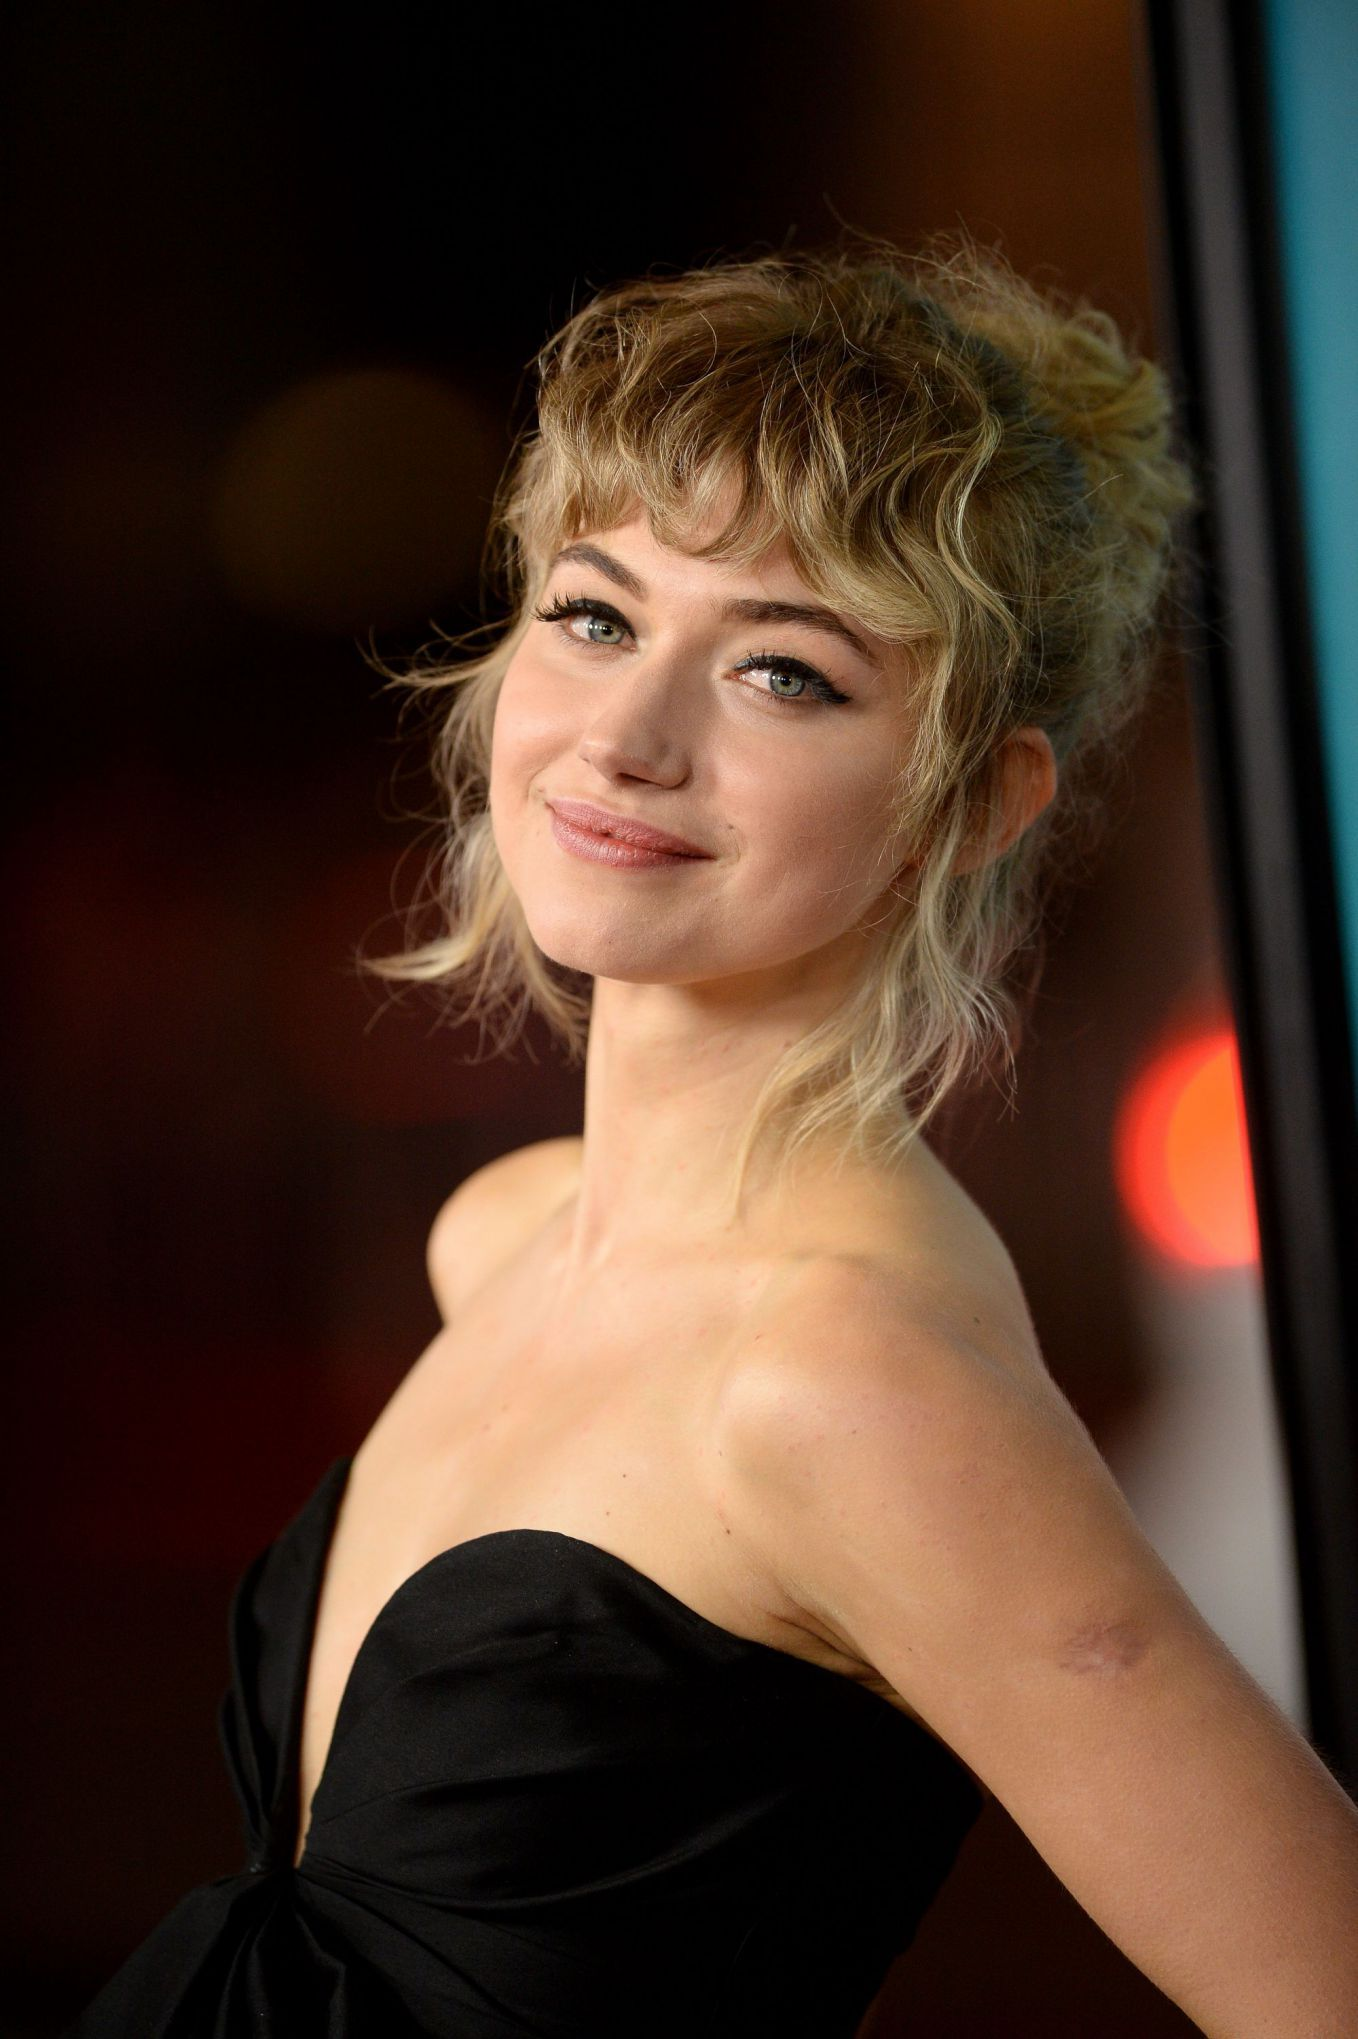 Imogen Poots walks the red carpet with curly bangs and a plunging